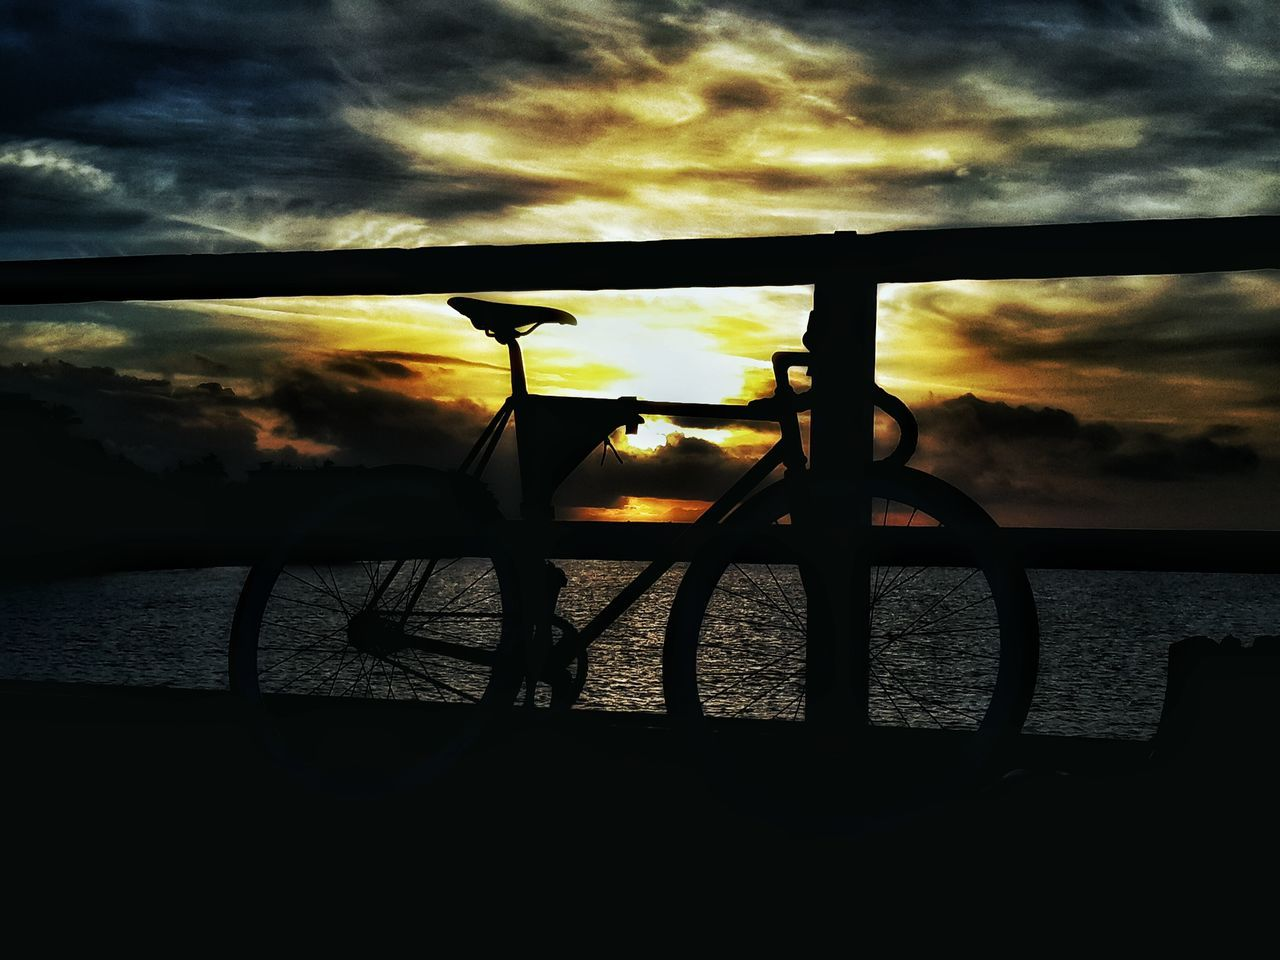 Fixieporn Fixie Track Bike Sunset Rider